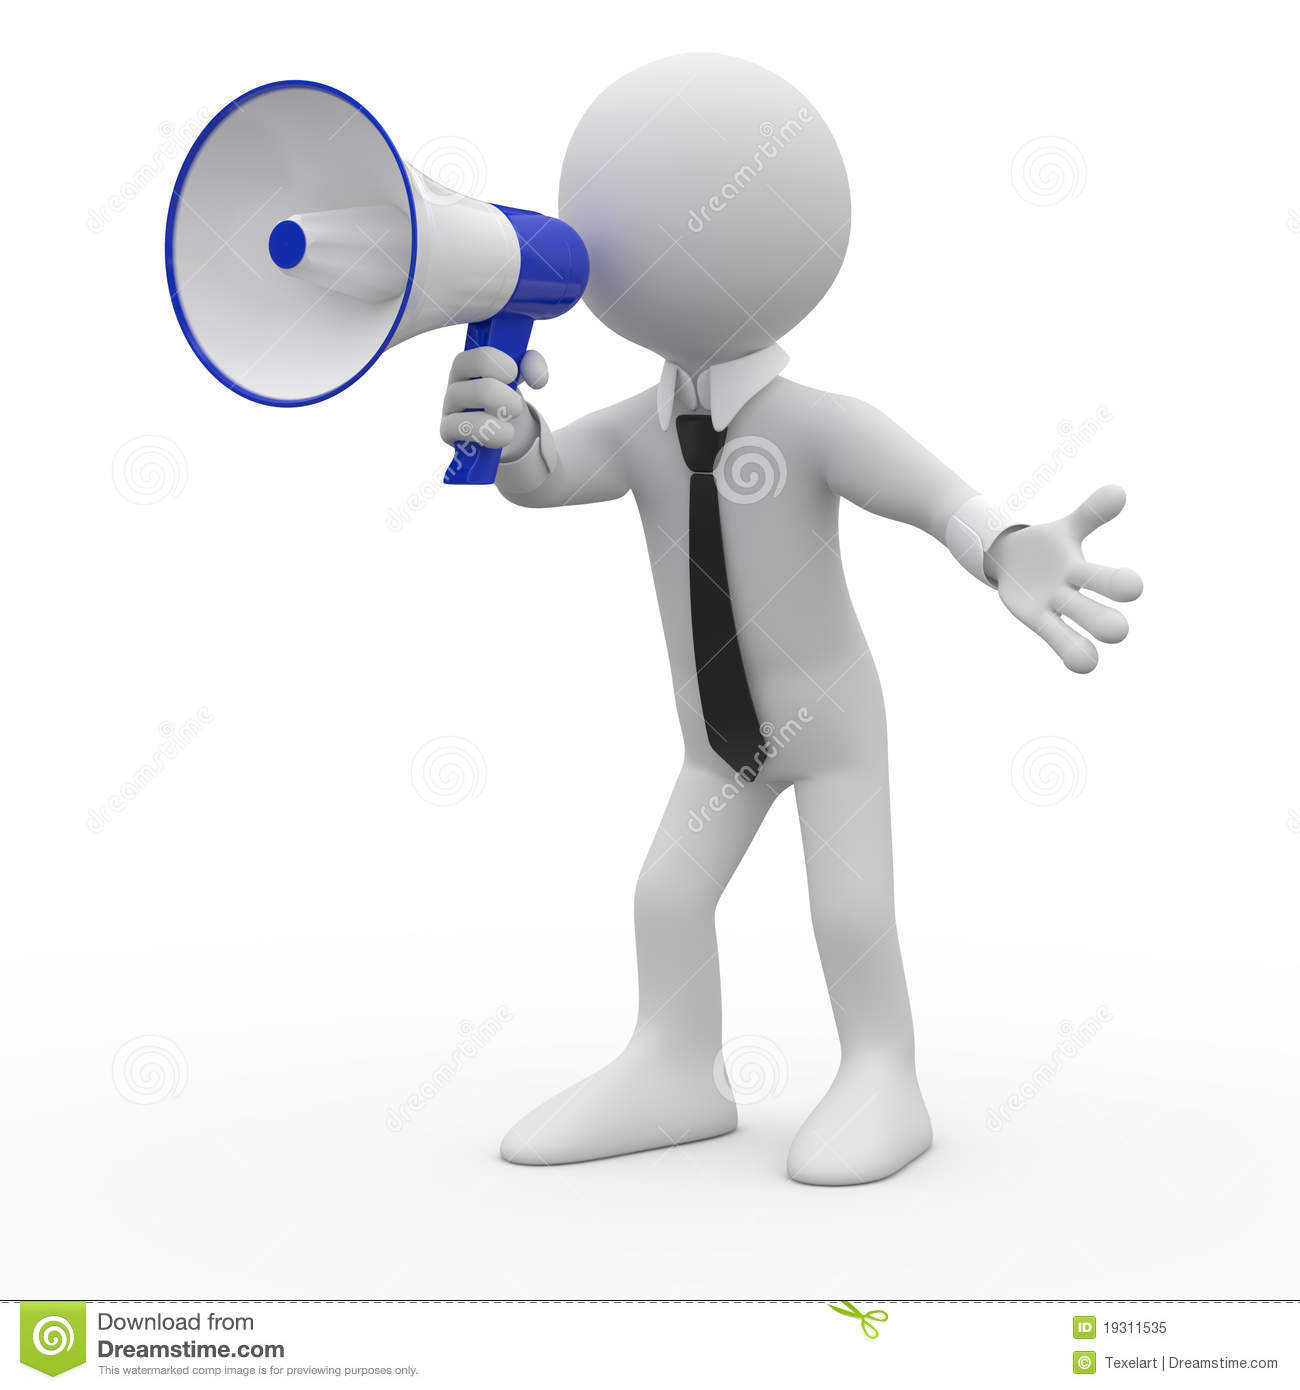 man talking on a white and blue megaphone royalty free megaphone clipart free free megaphone clipart images